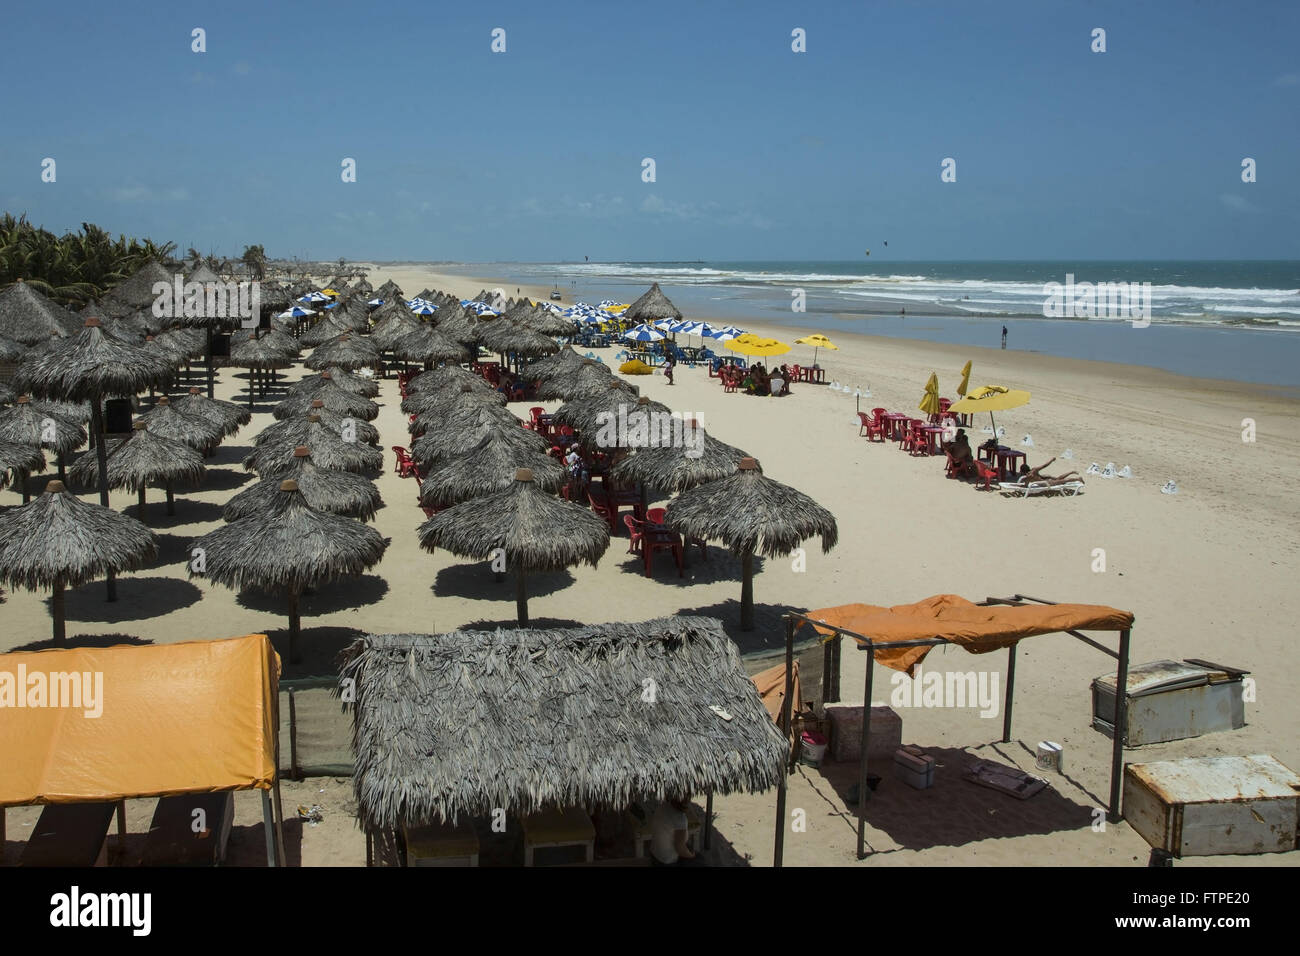 Tents with coverage of greens in Praia do Futuro - Stock Image